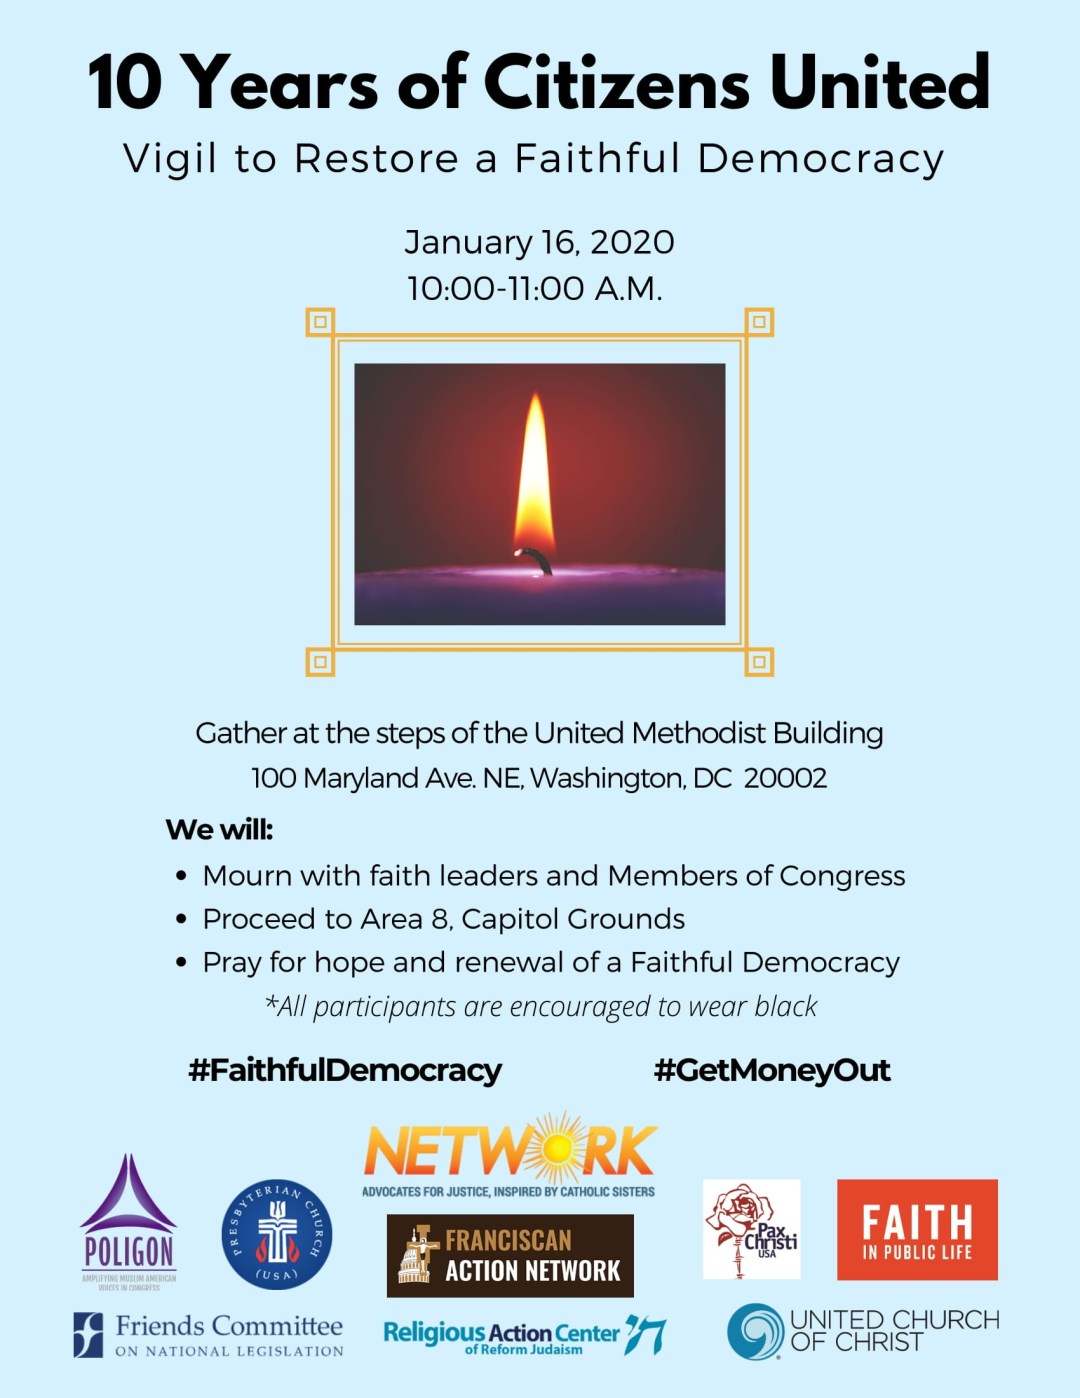 10 years of Citizens United Vigil Flyer-1 (3).jpg